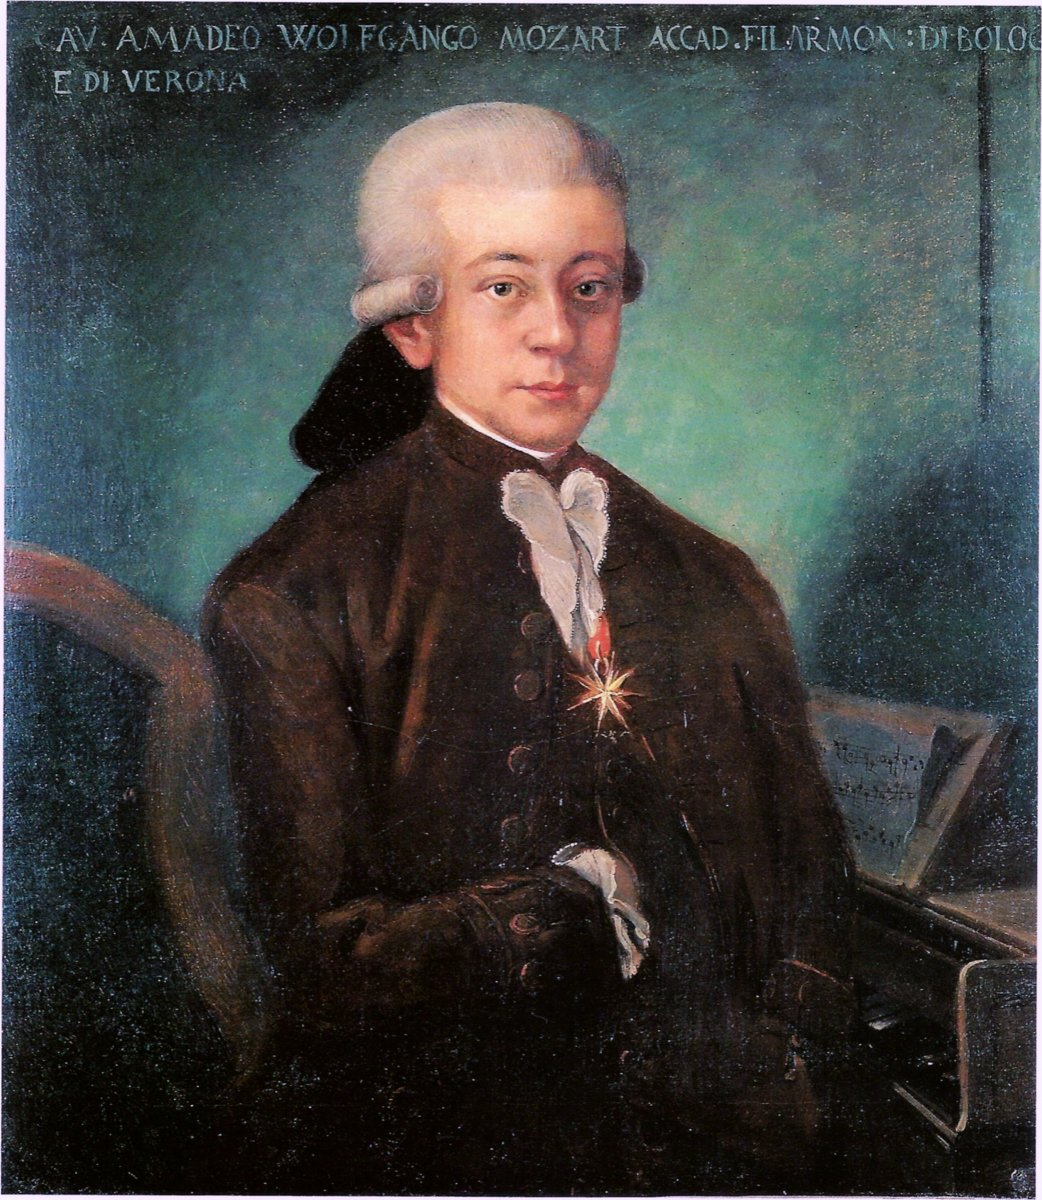 Mozart's Most Famous & Popular Music